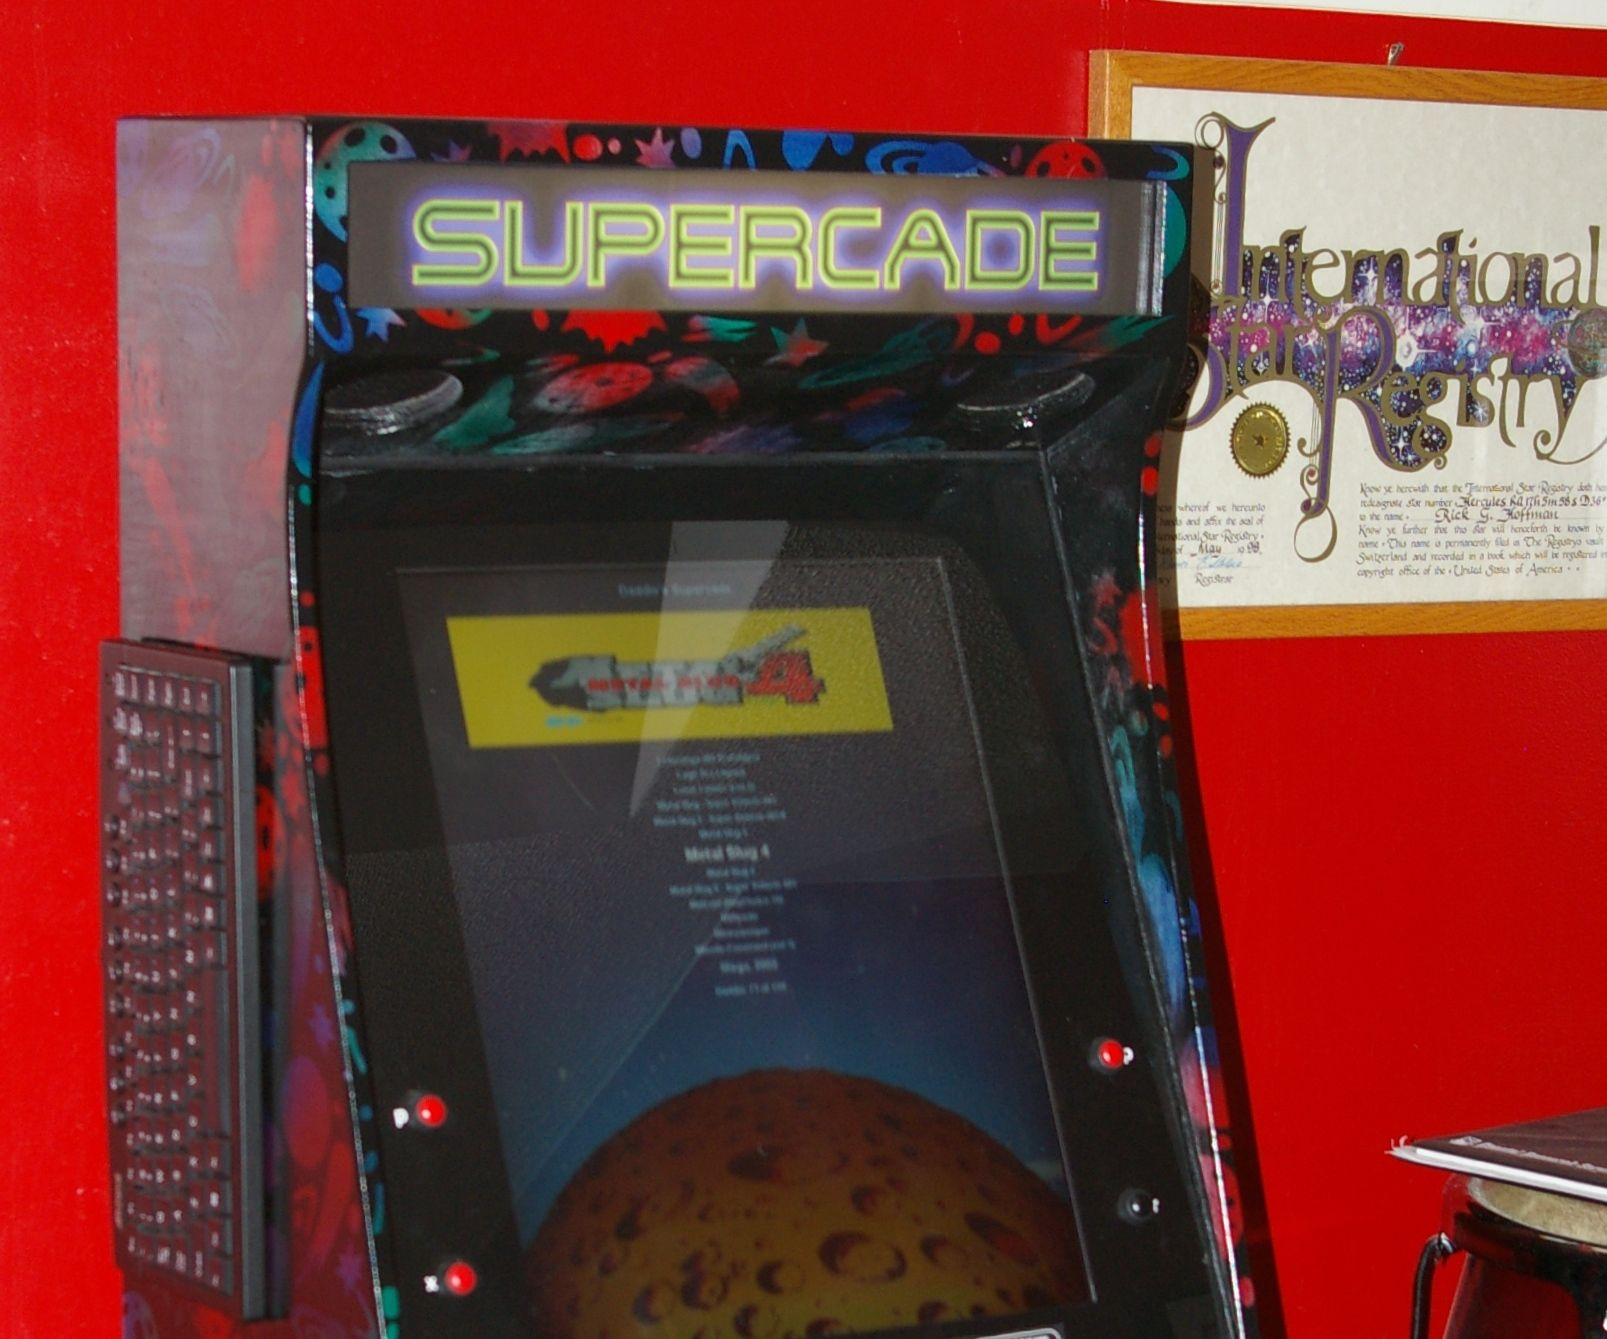 Supercade - How to Design and Build a Bar Top MAME Arcade